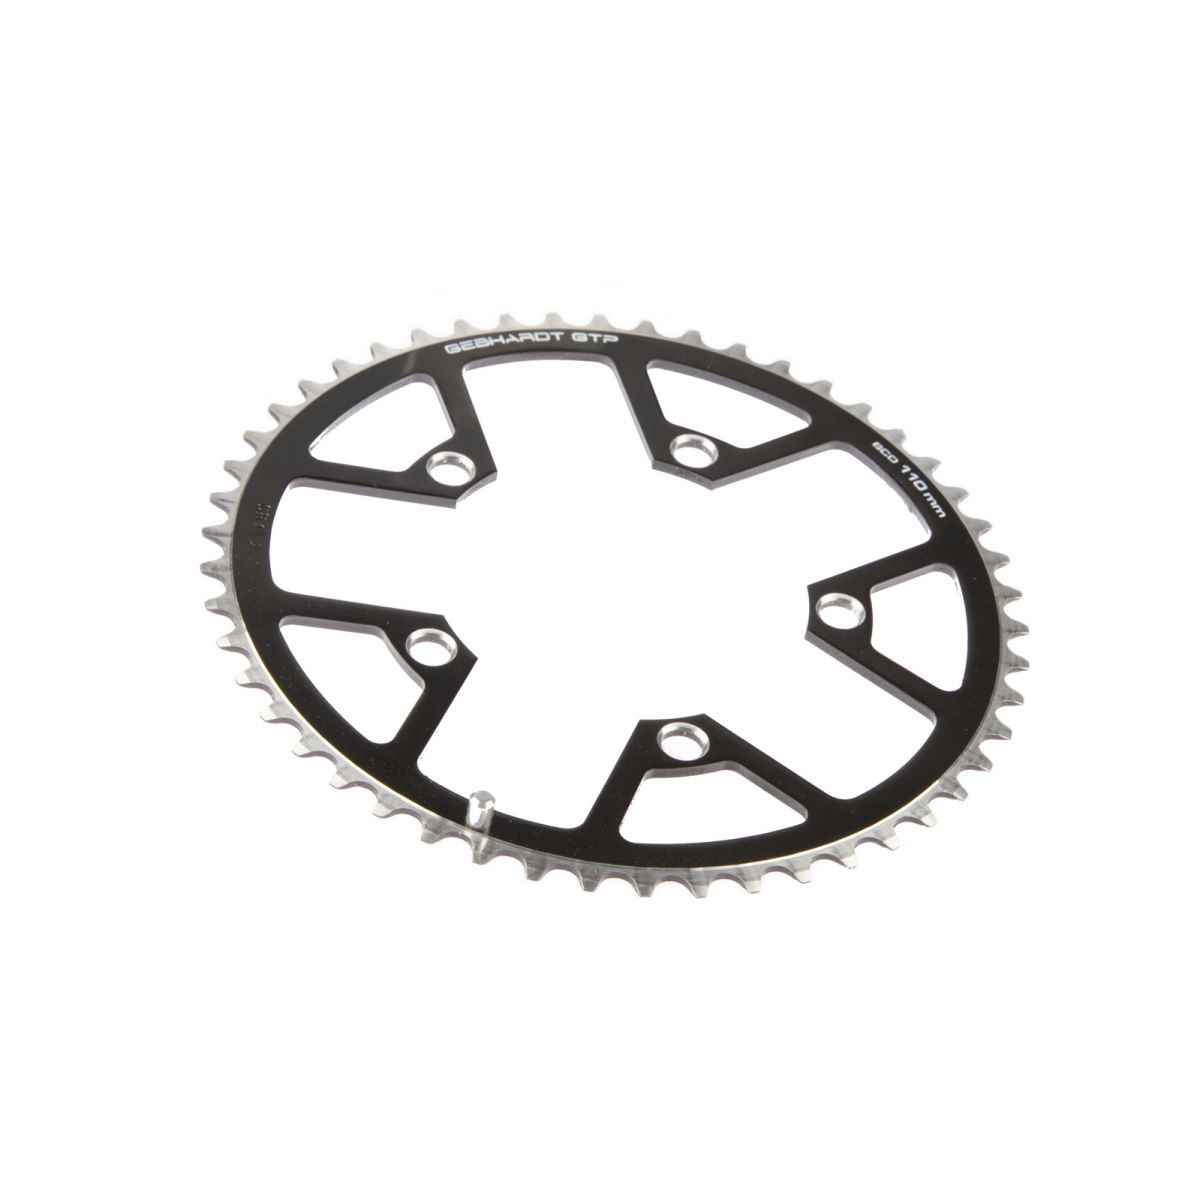 gebhardt chainring classic bcd 110 mm 5hole 43t black